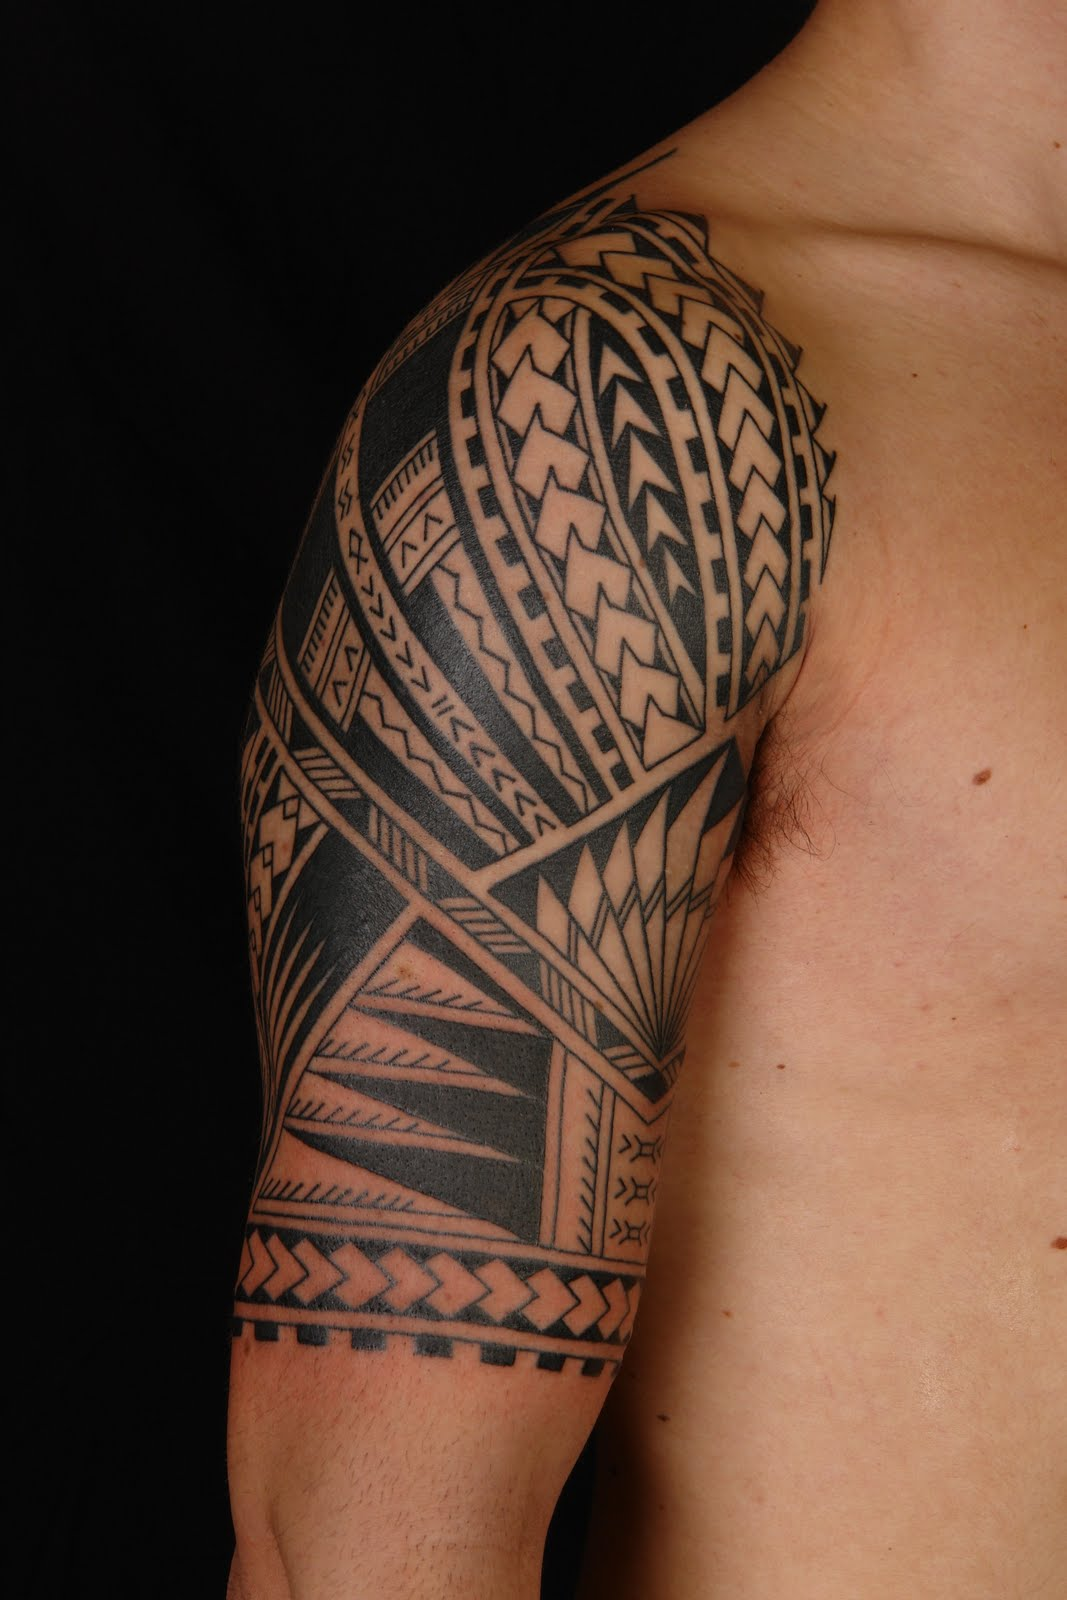 Regret, that Tribal tattoo designs apologise, but